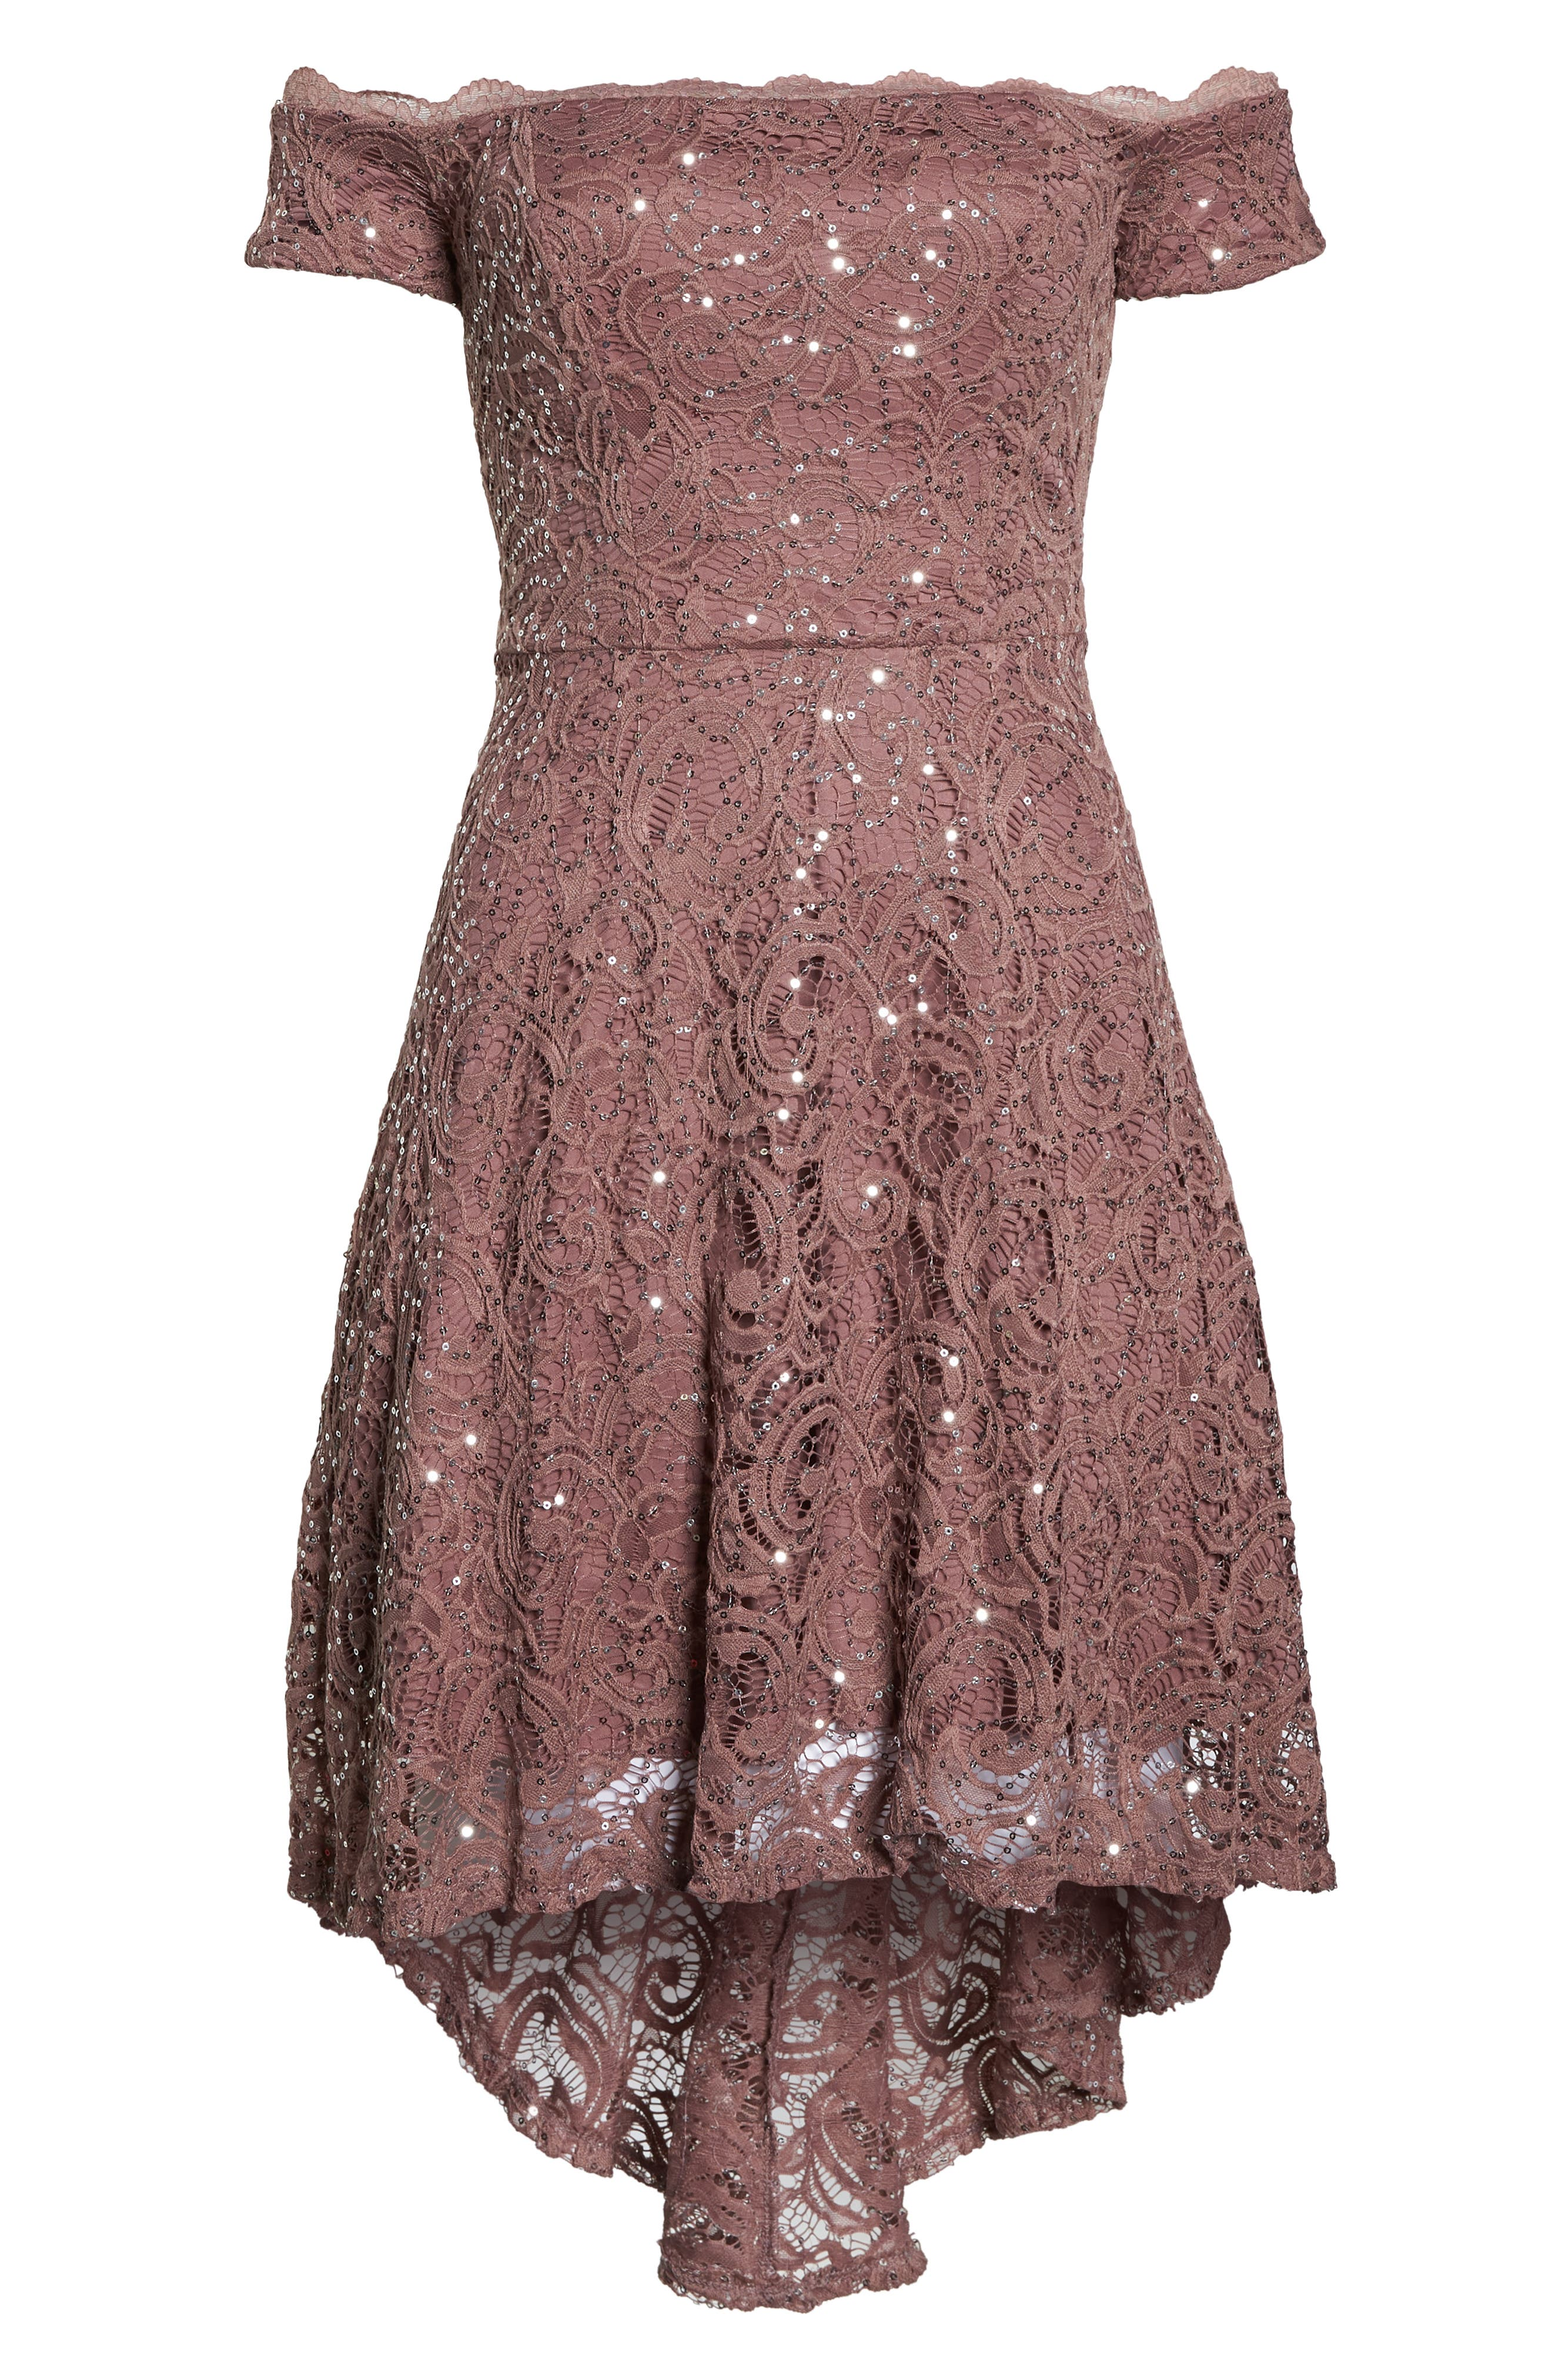 SEQUIN HEARTS,                             Off the Shoulder Sequin Lace Cocktail Dress,                             Alternate thumbnail 7, color,                             TAUPE/ SILVER